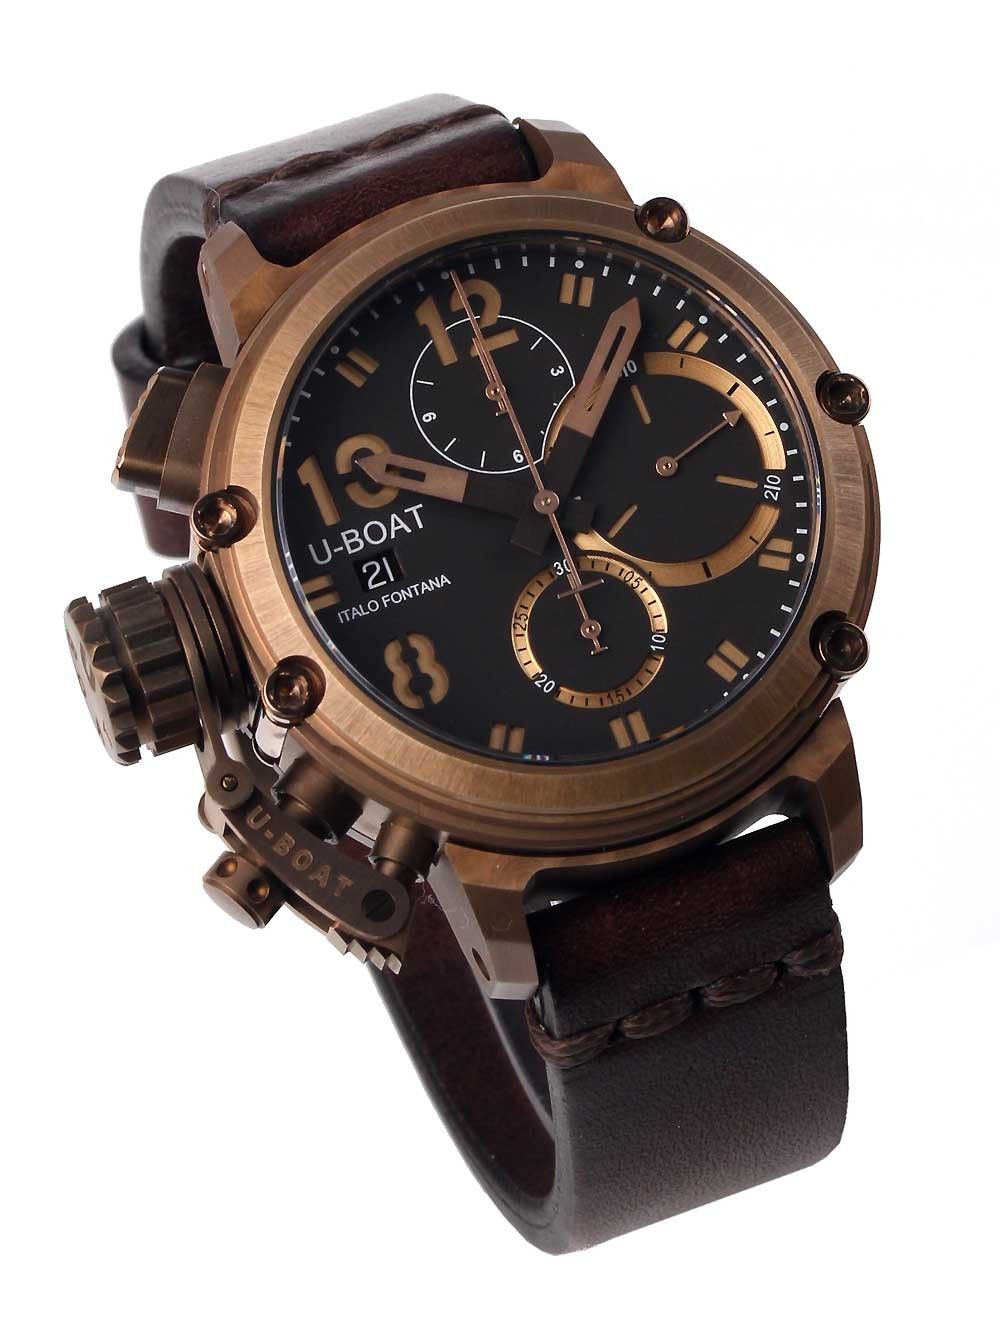 ceas barbatesc u-boat 8014 chimera chrono 43mm 10atm